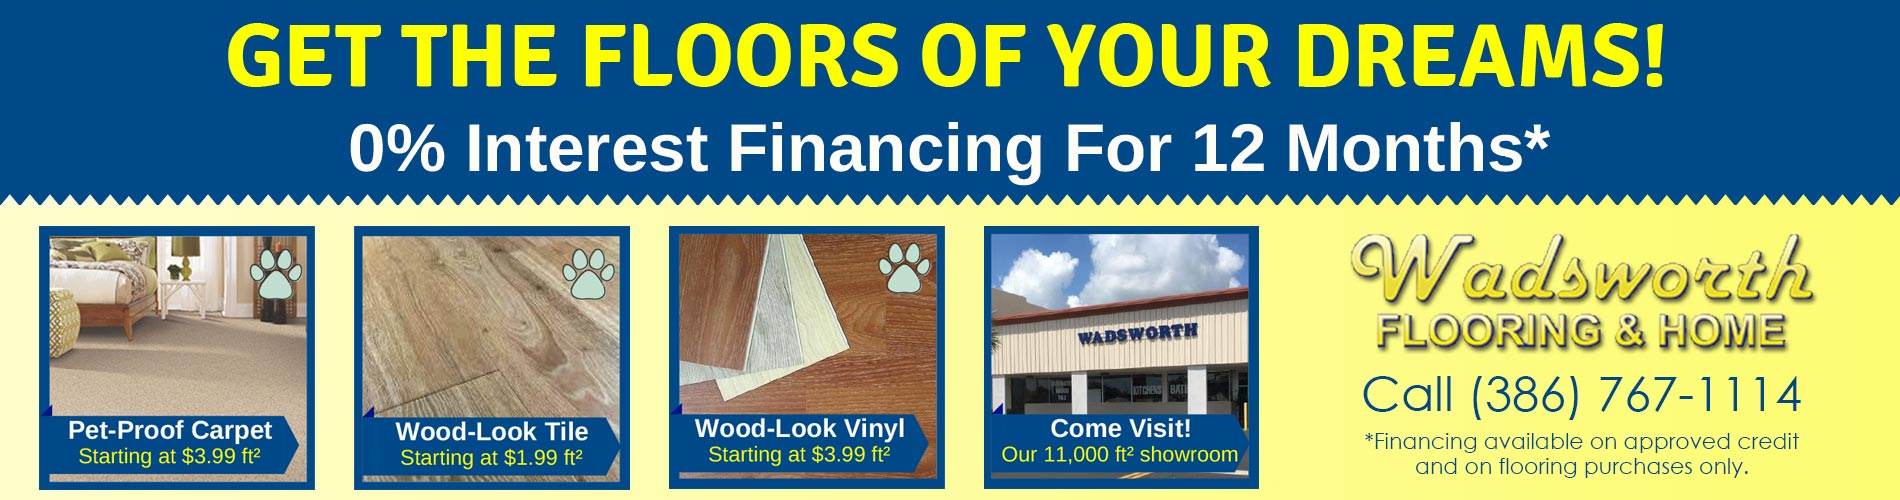 Get the floor of your dreams! 0% interest financing for 12 months. Amazing deals and vast selection only at Wadsworth Flooring & Home in South Daytona, Florida. Financing available on approved credit and on flooring purchases only.